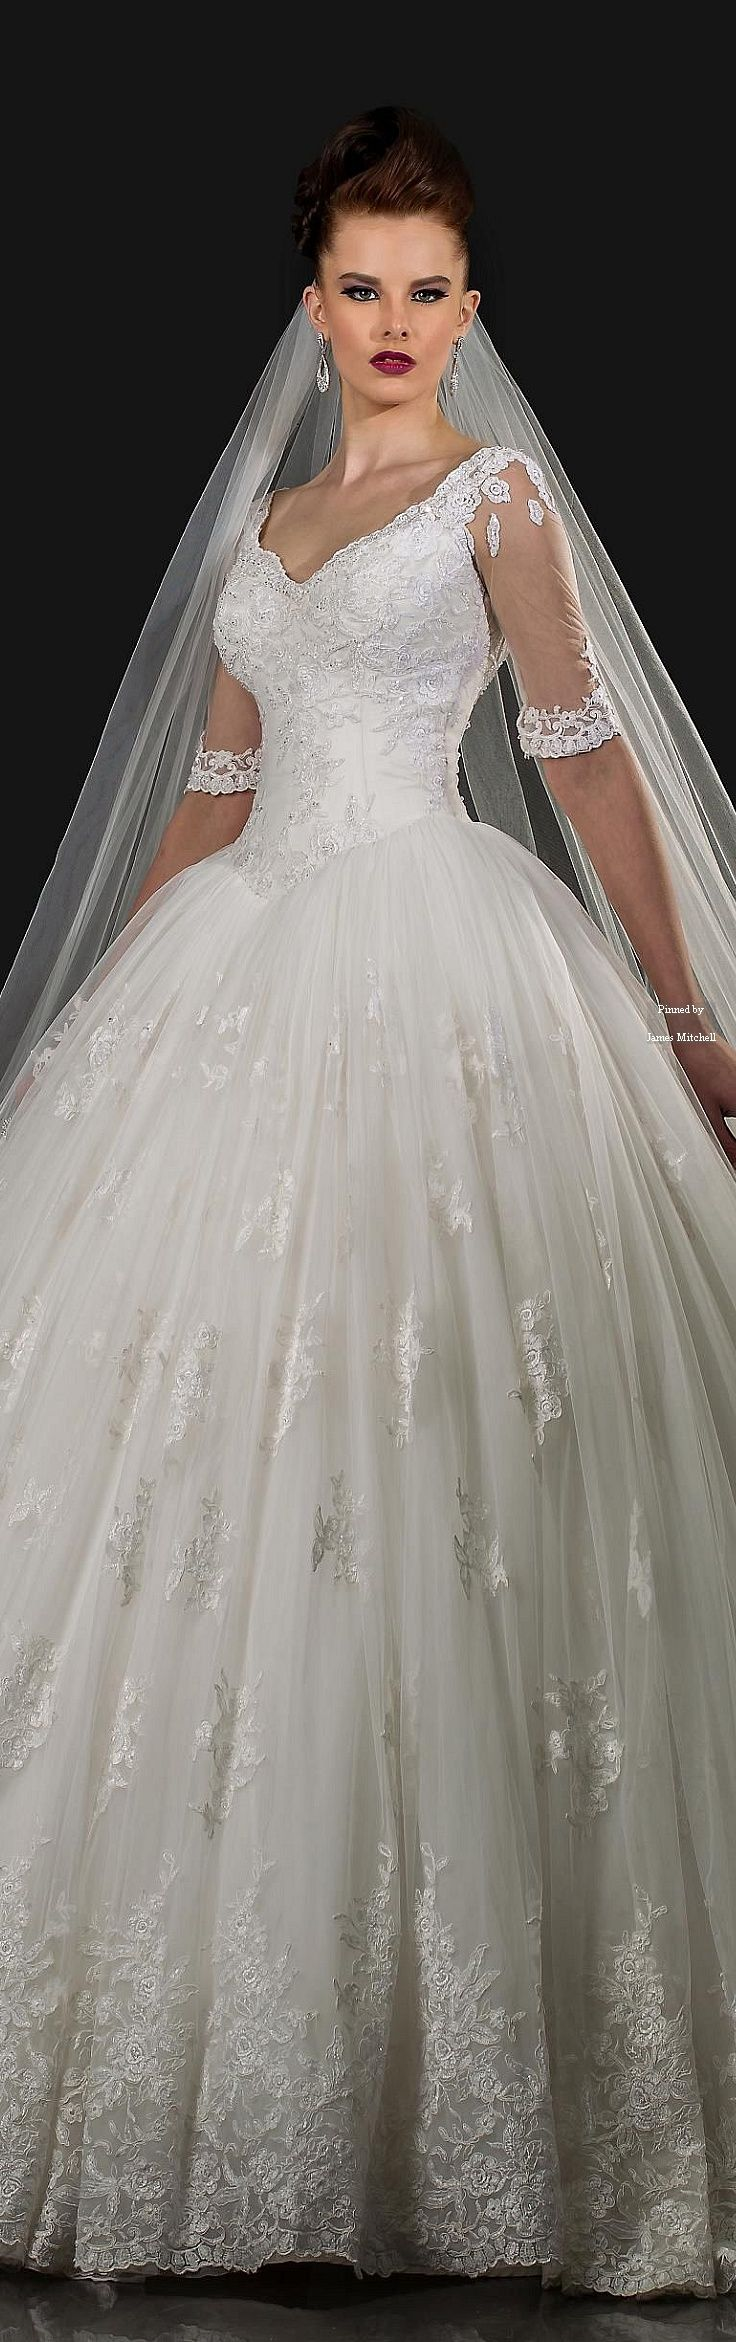 Appolo Fashion Spring-summer 2015 Need more great ideas to plan your wedding? www.destinationweddingcollective.com